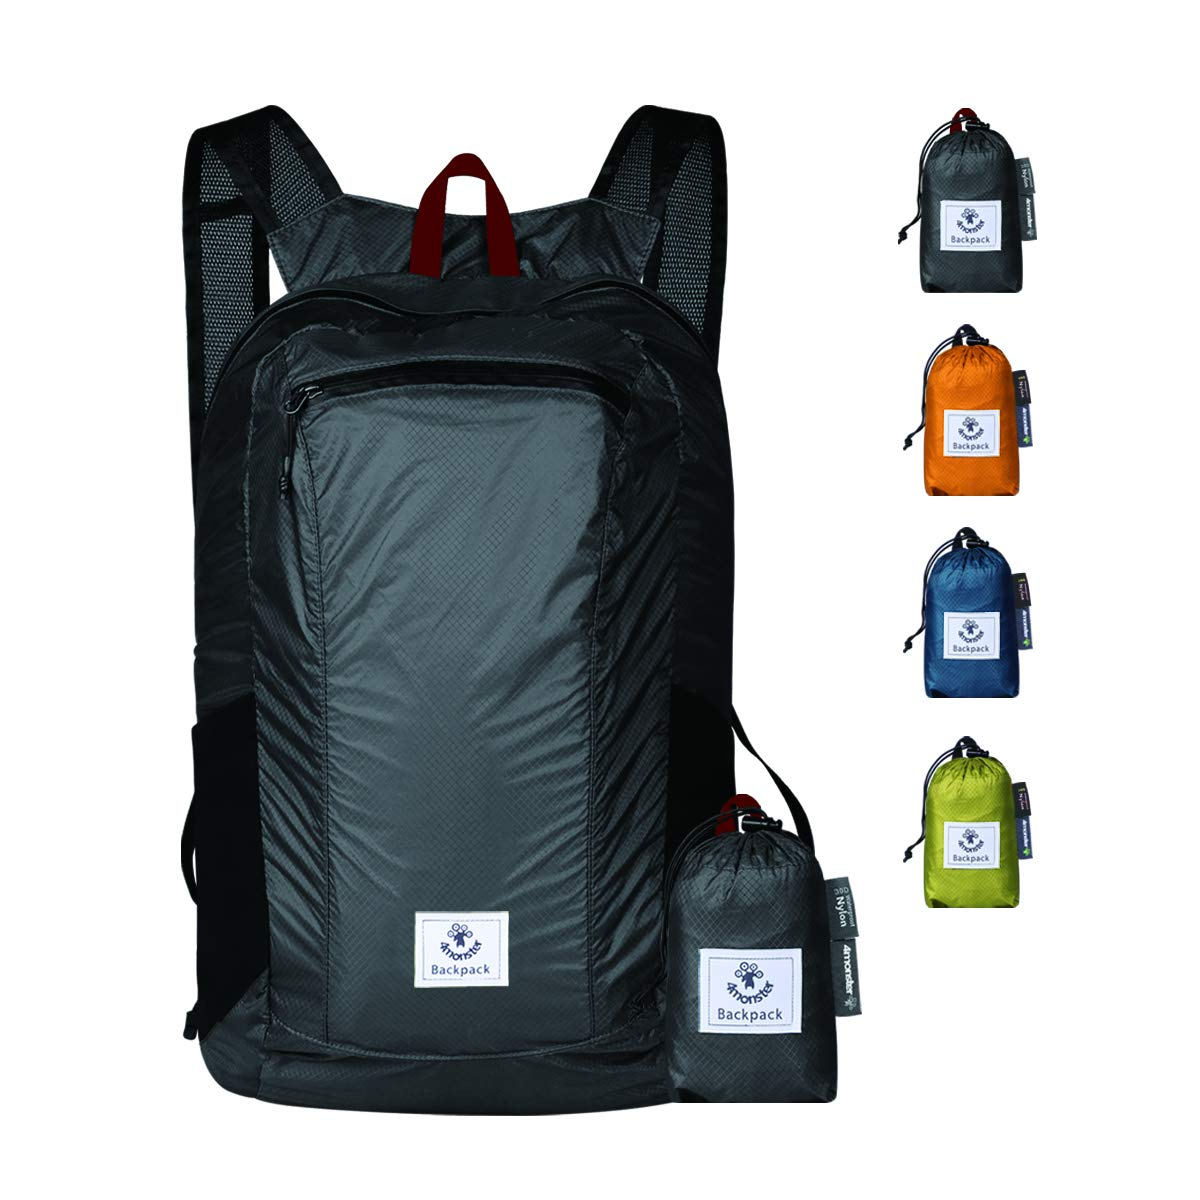 The 4monster Durable Backpack travel product recommended by Ronald D'souza on Lifney.